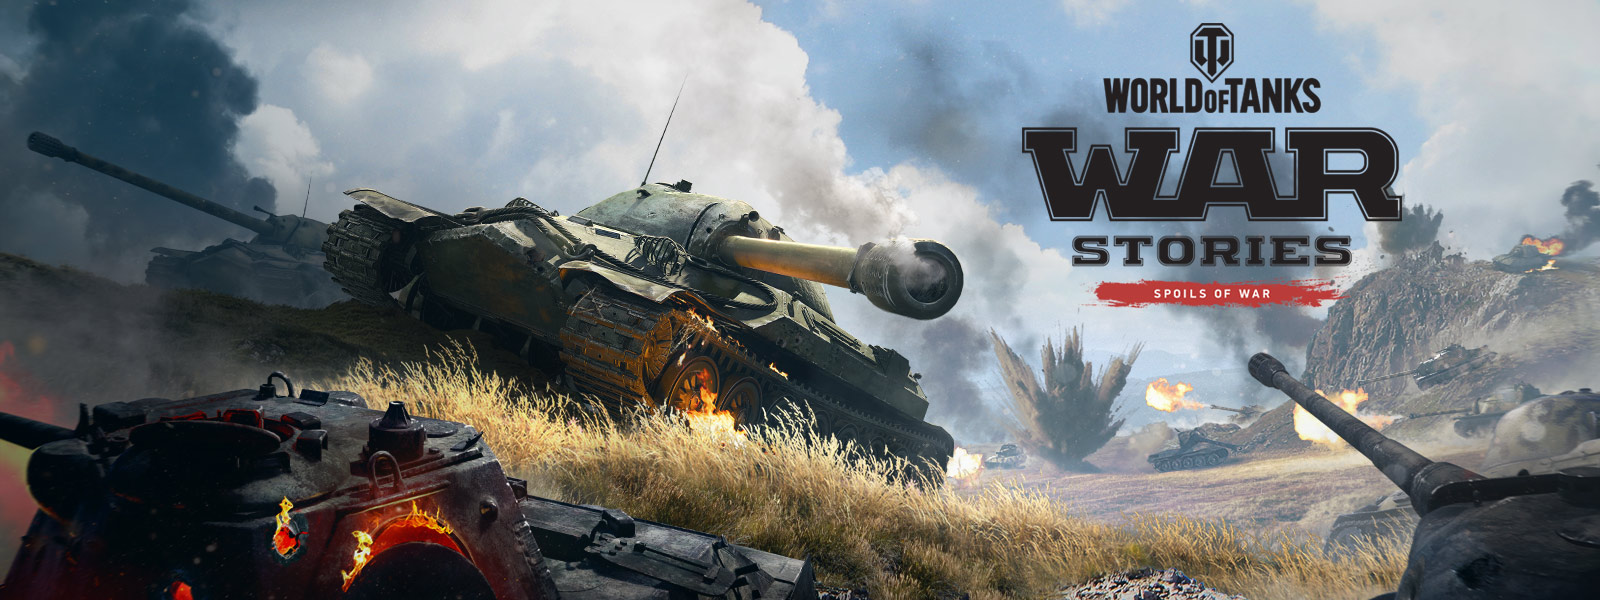 World of Tanks War Stories Spoils of War, dos tanques suben una colina con varios tanques que disparan en el fondo